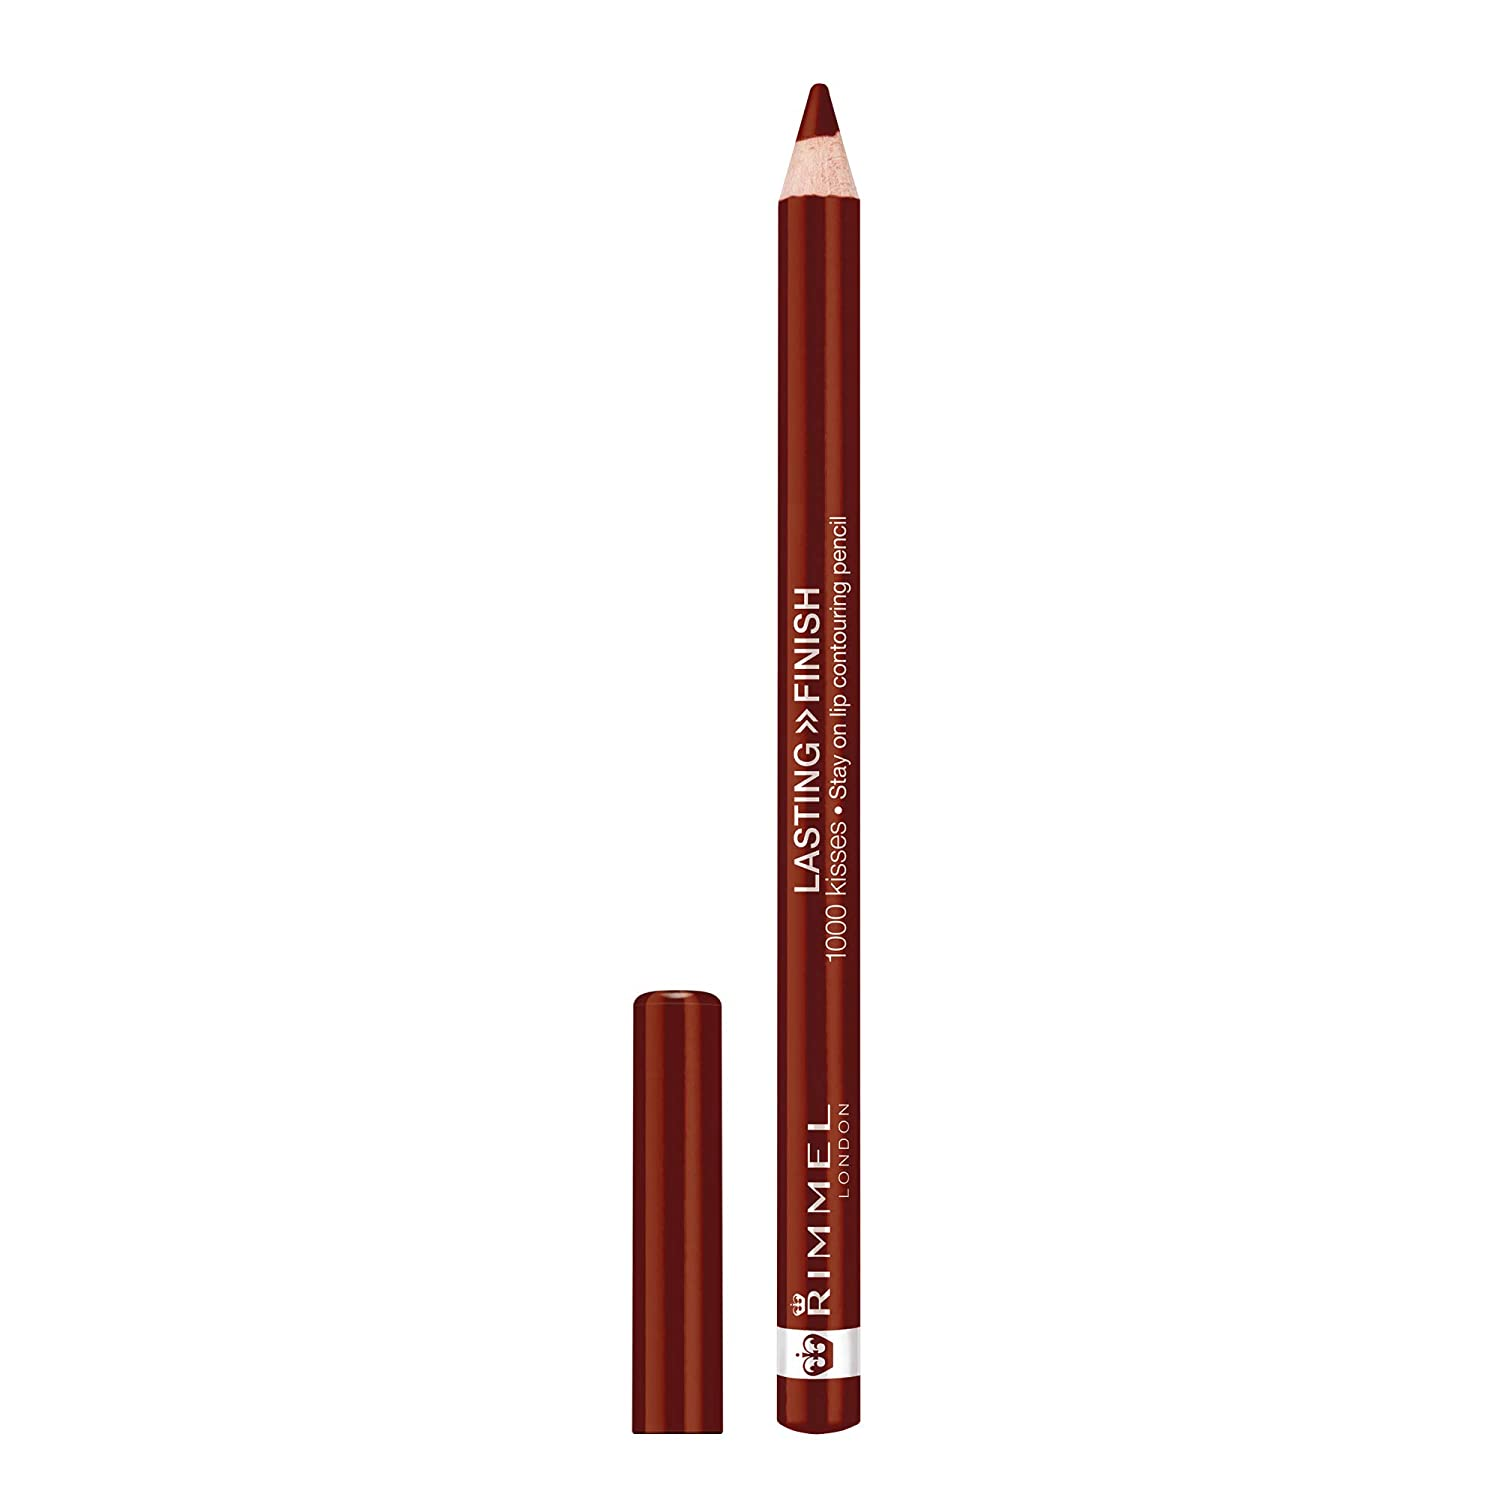 Rimmel London Lasting Finish 1000 Kisses Lip Liner, Coffee Bean - 041, 1.2g Coty 34788494041